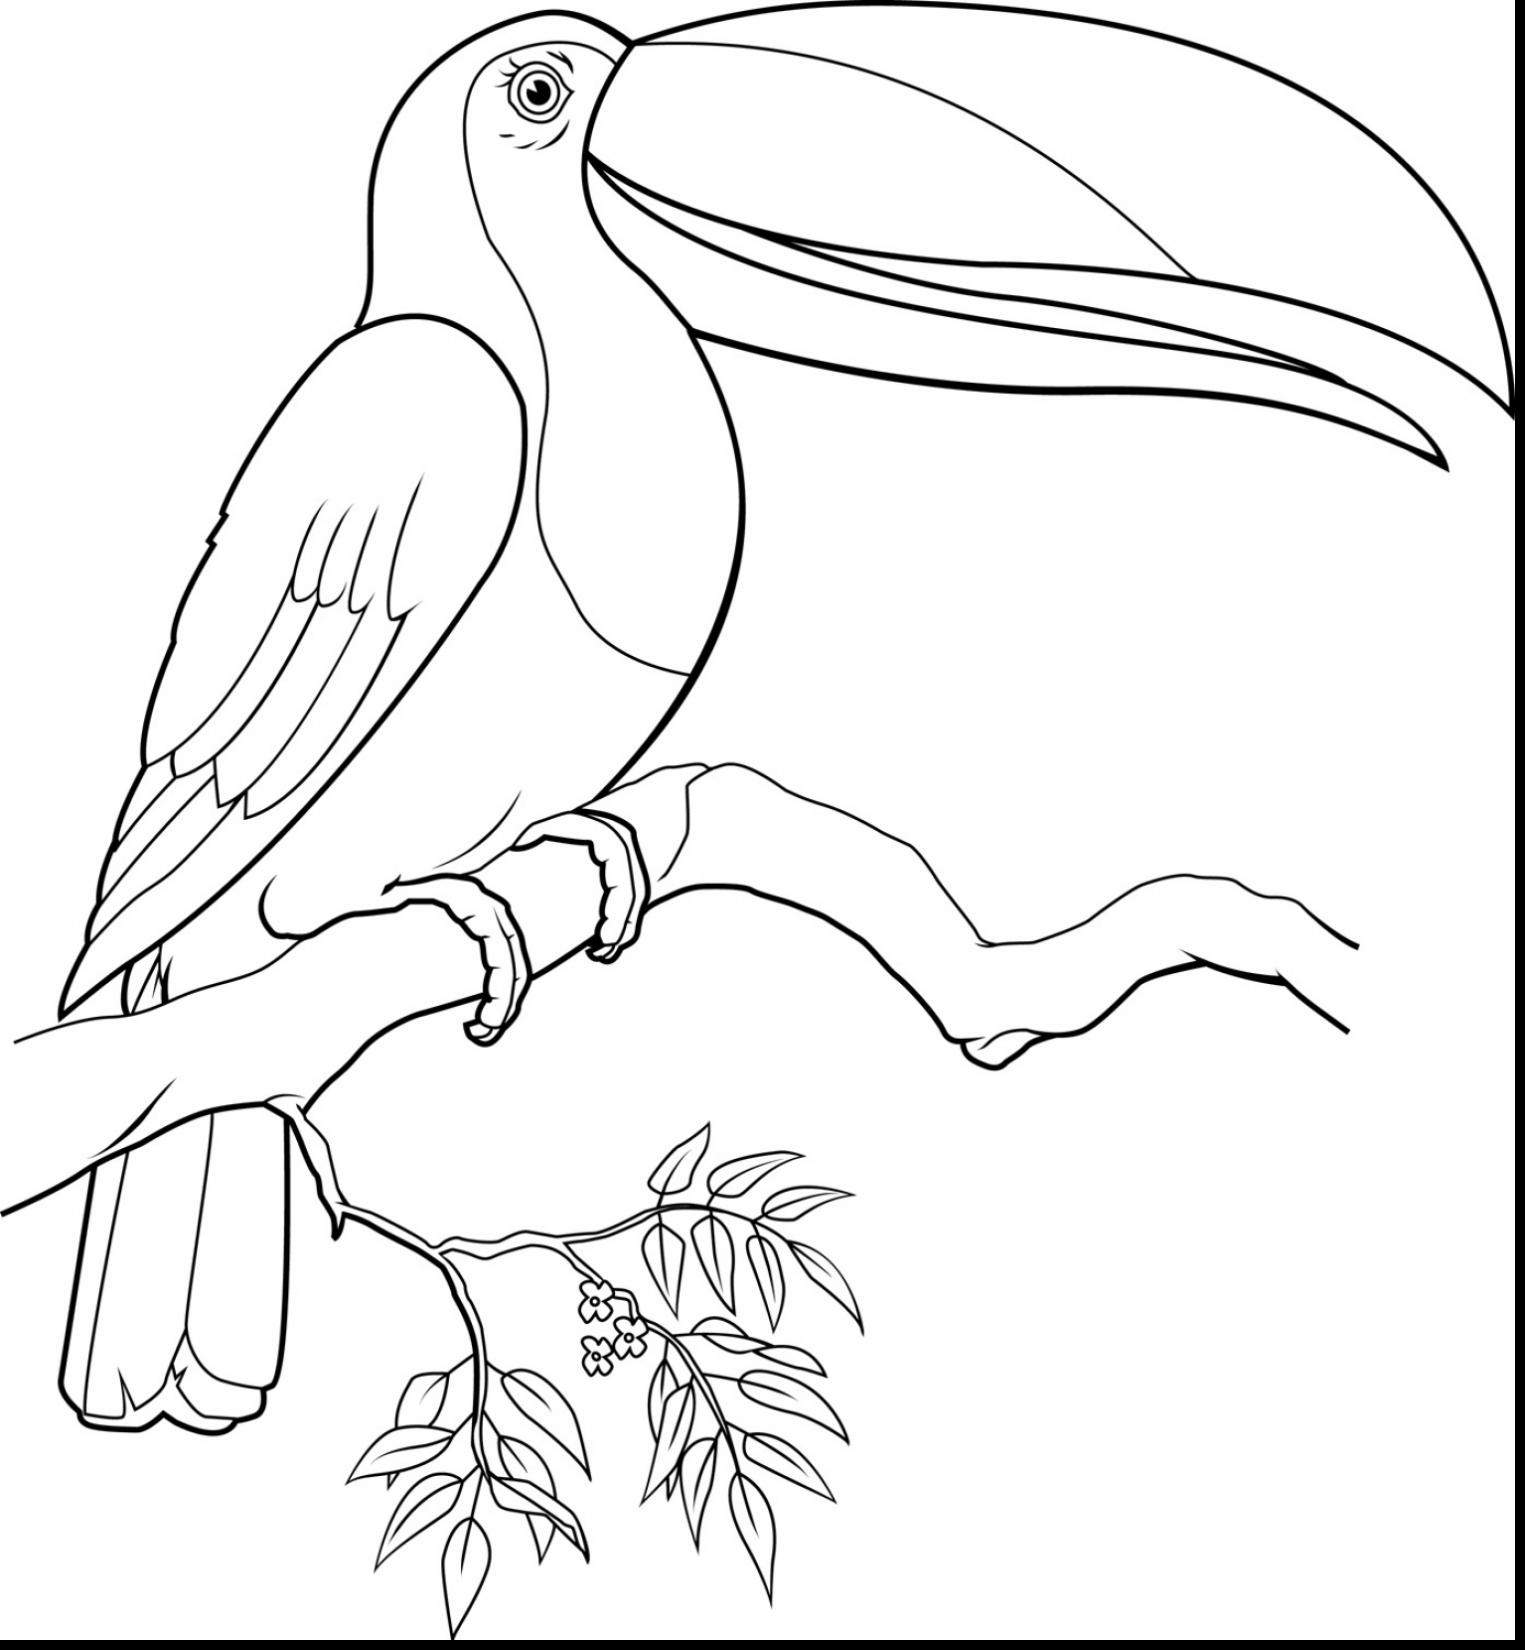 toucan pictures to print toucan coloring pages to download and print for free to pictures toucan print